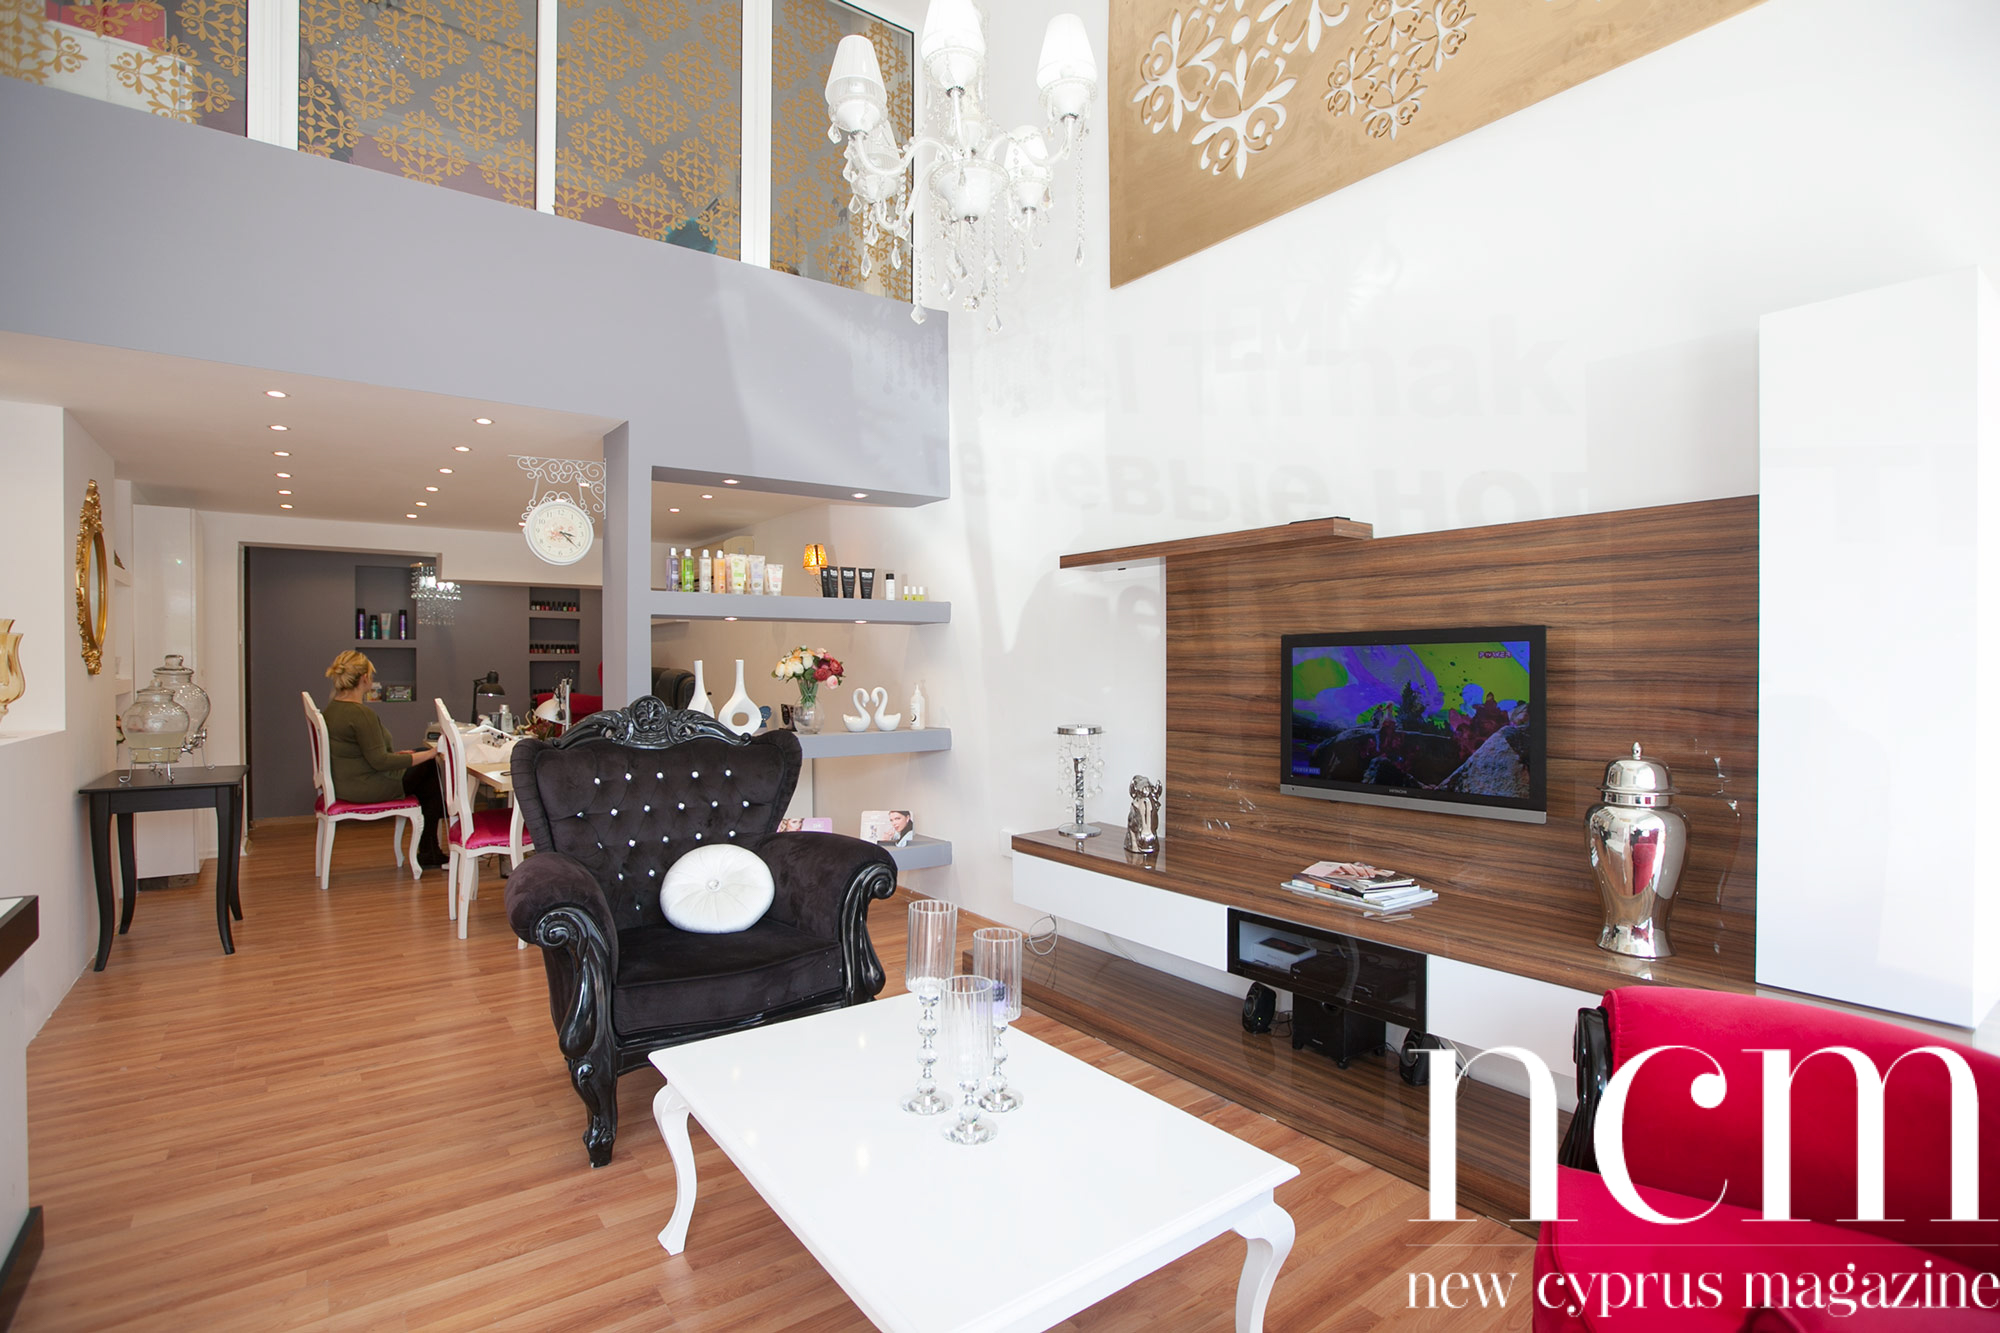 Alara Nail Salon - - North Cyprus Online Magazine